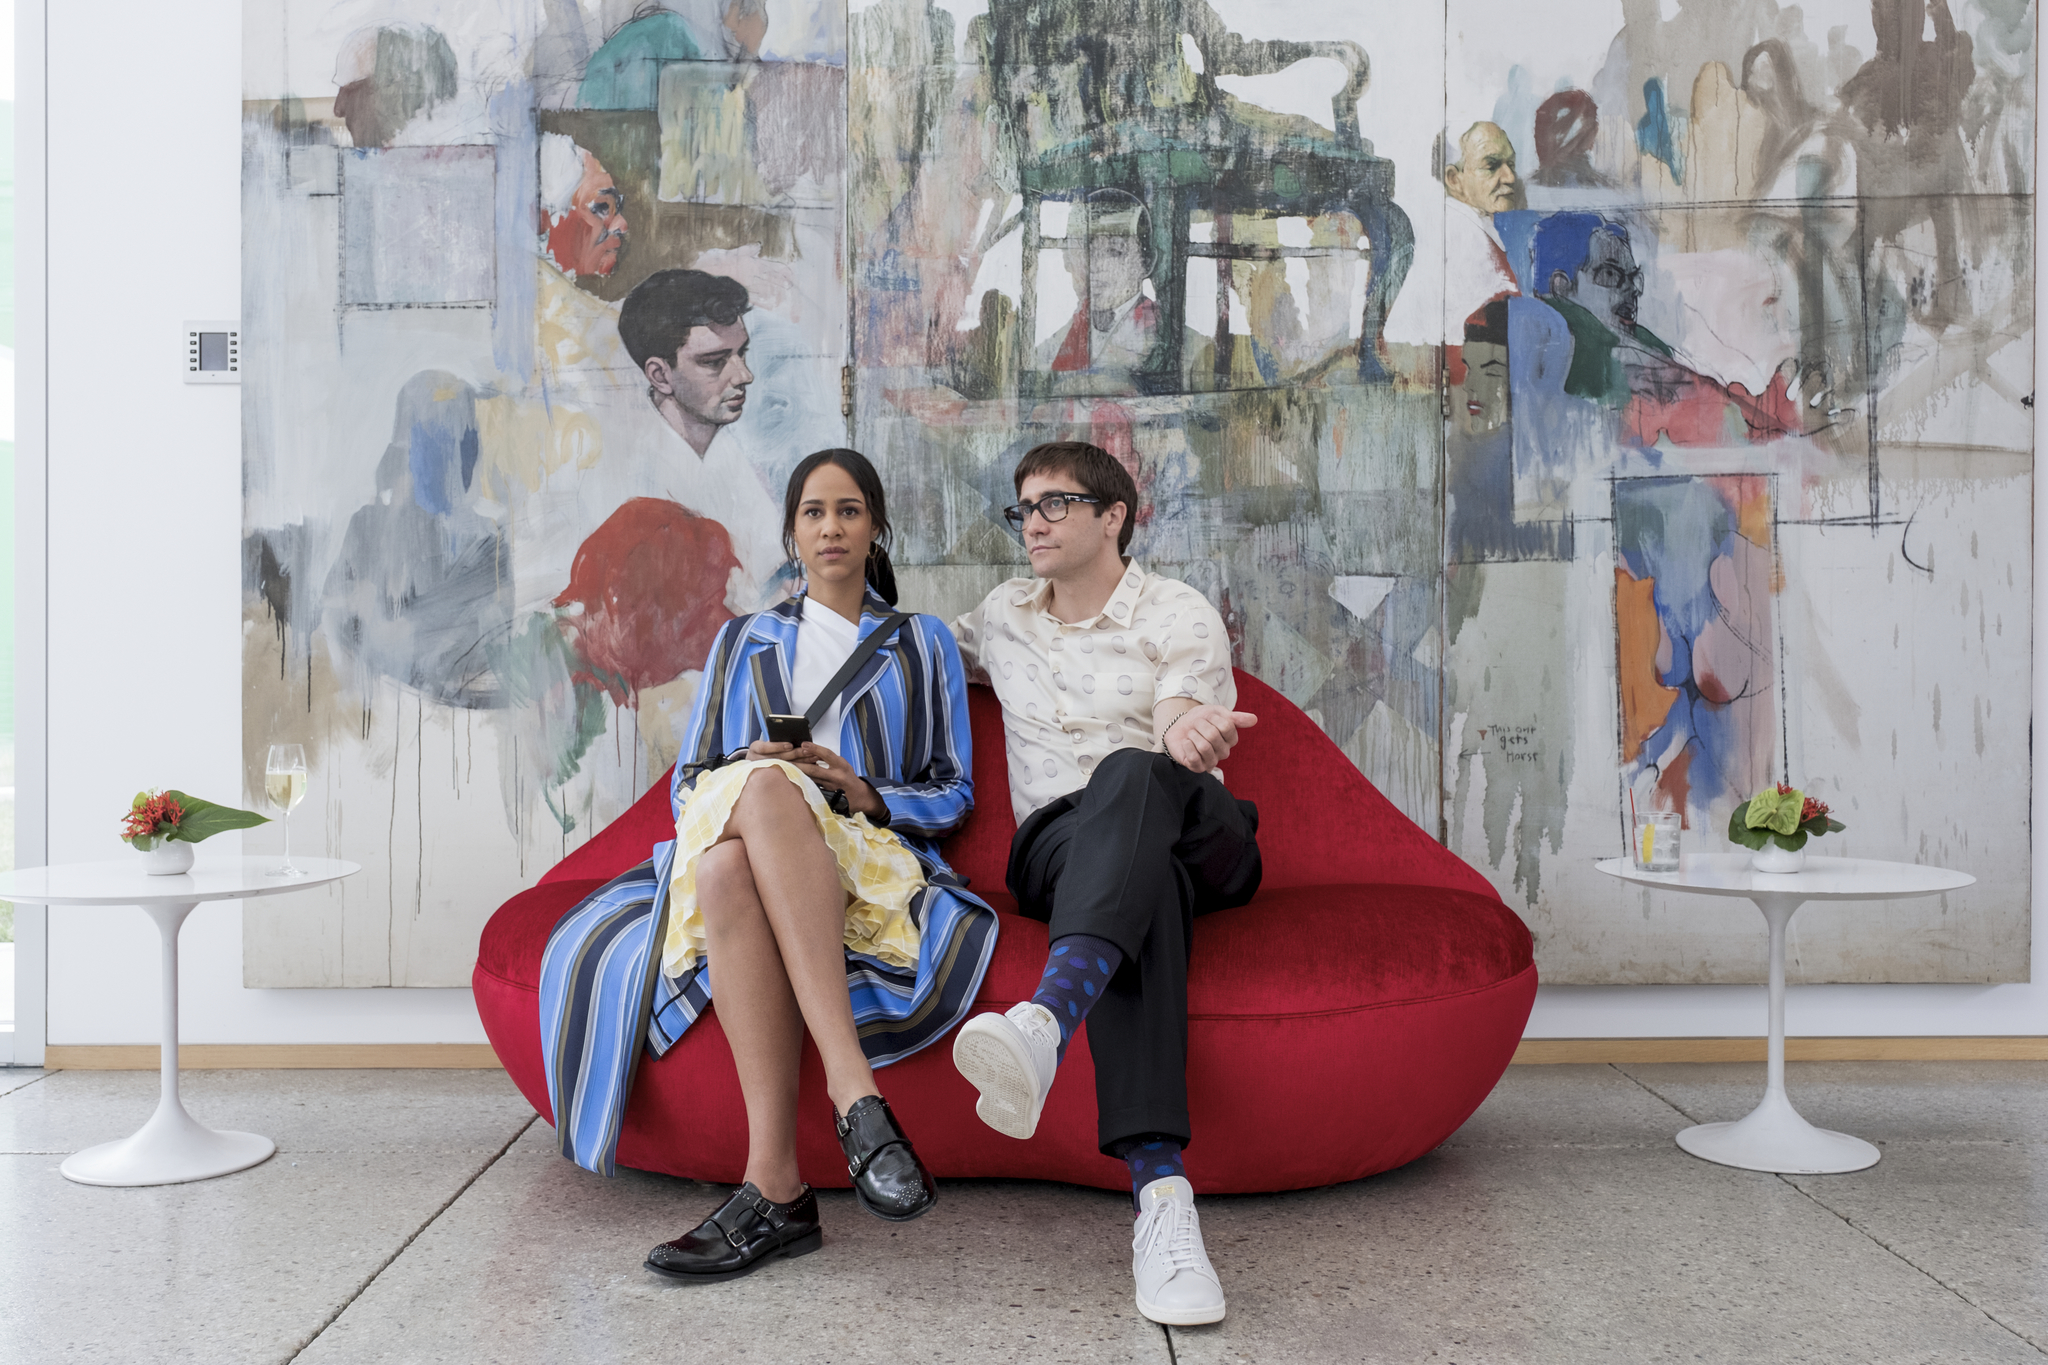 Velvet Buzzsaw 2019   Photo Gallery   IMDb 2048x1365